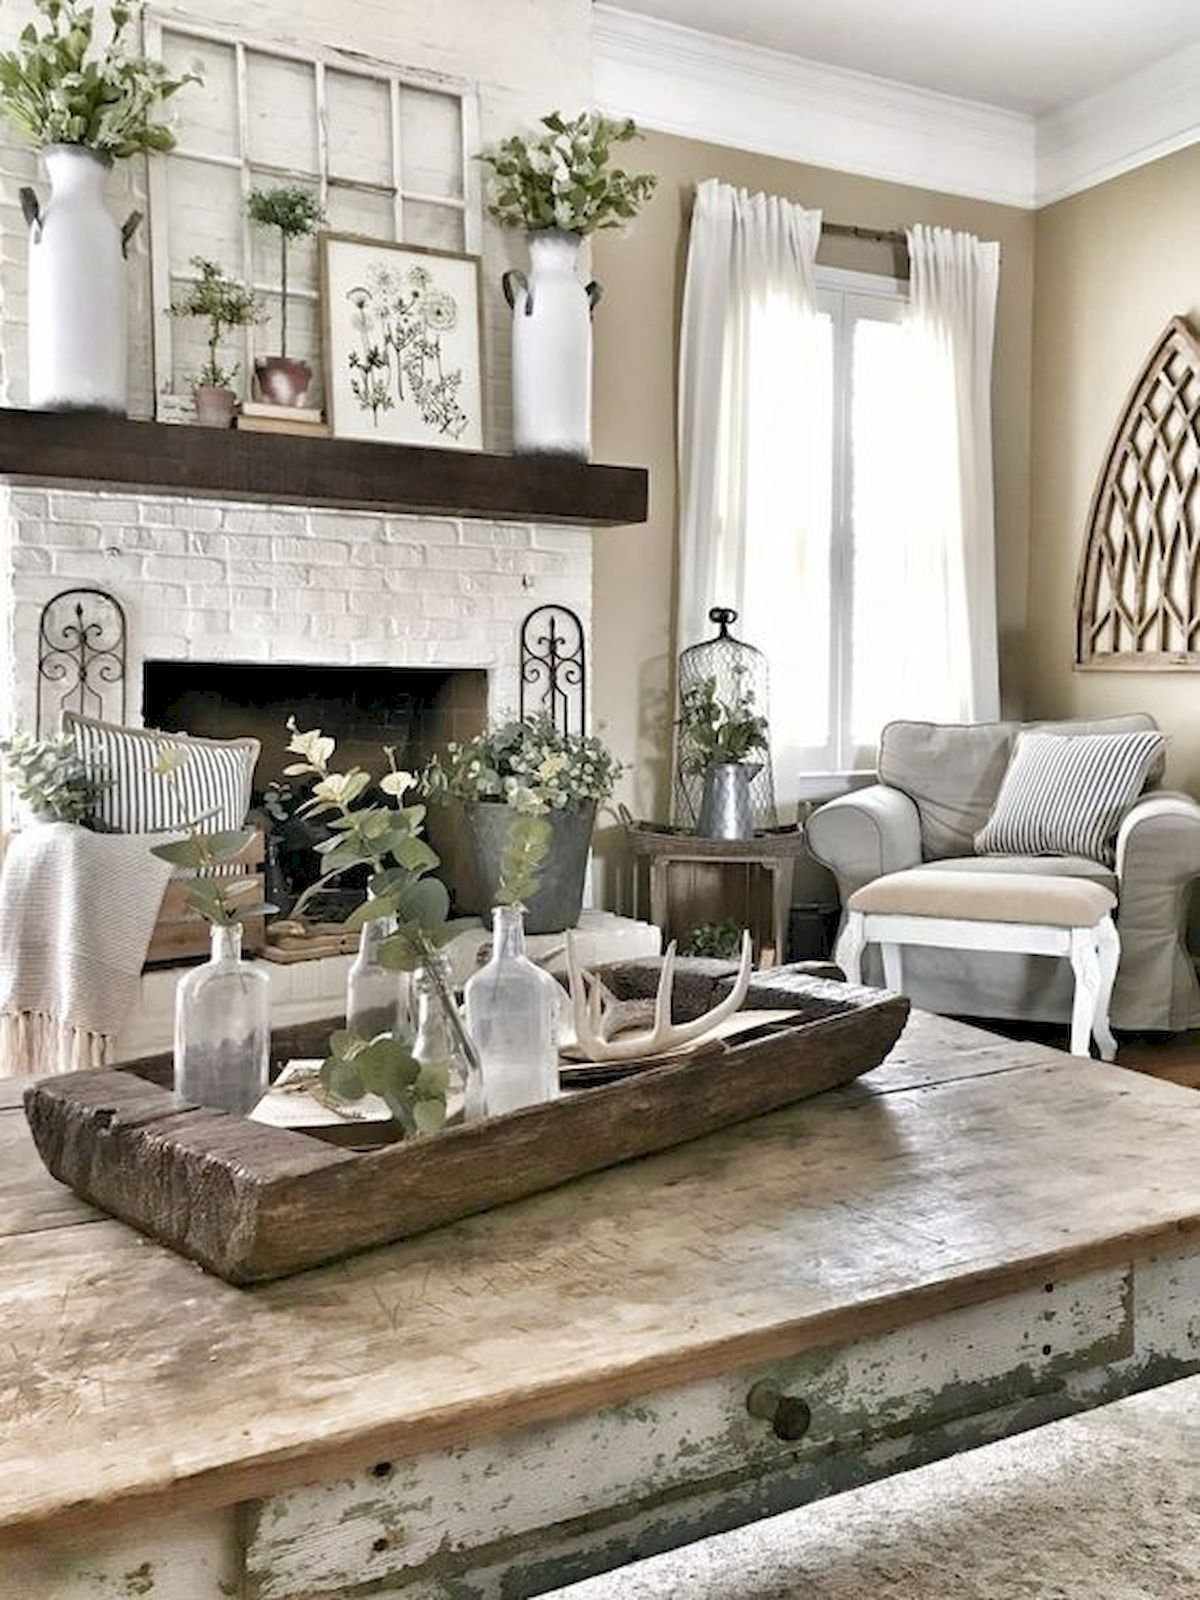 50 Decorating Living Rooms Ideas 2020 in 2020 Farmhouse